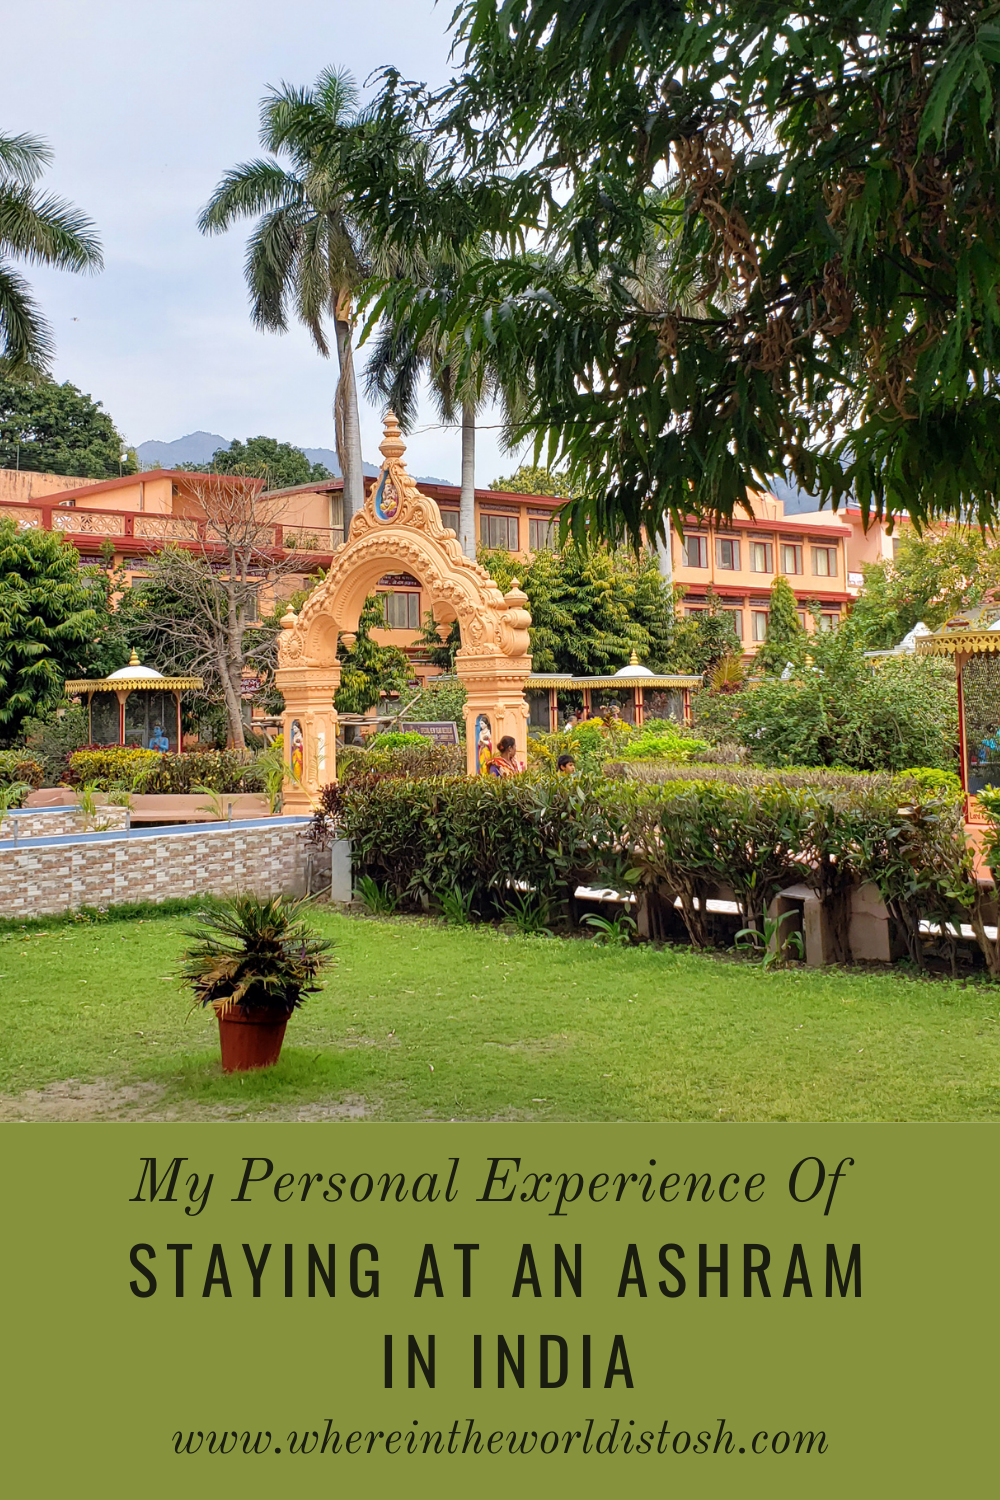 My Personal Experience Of Staying At An Ashram In India